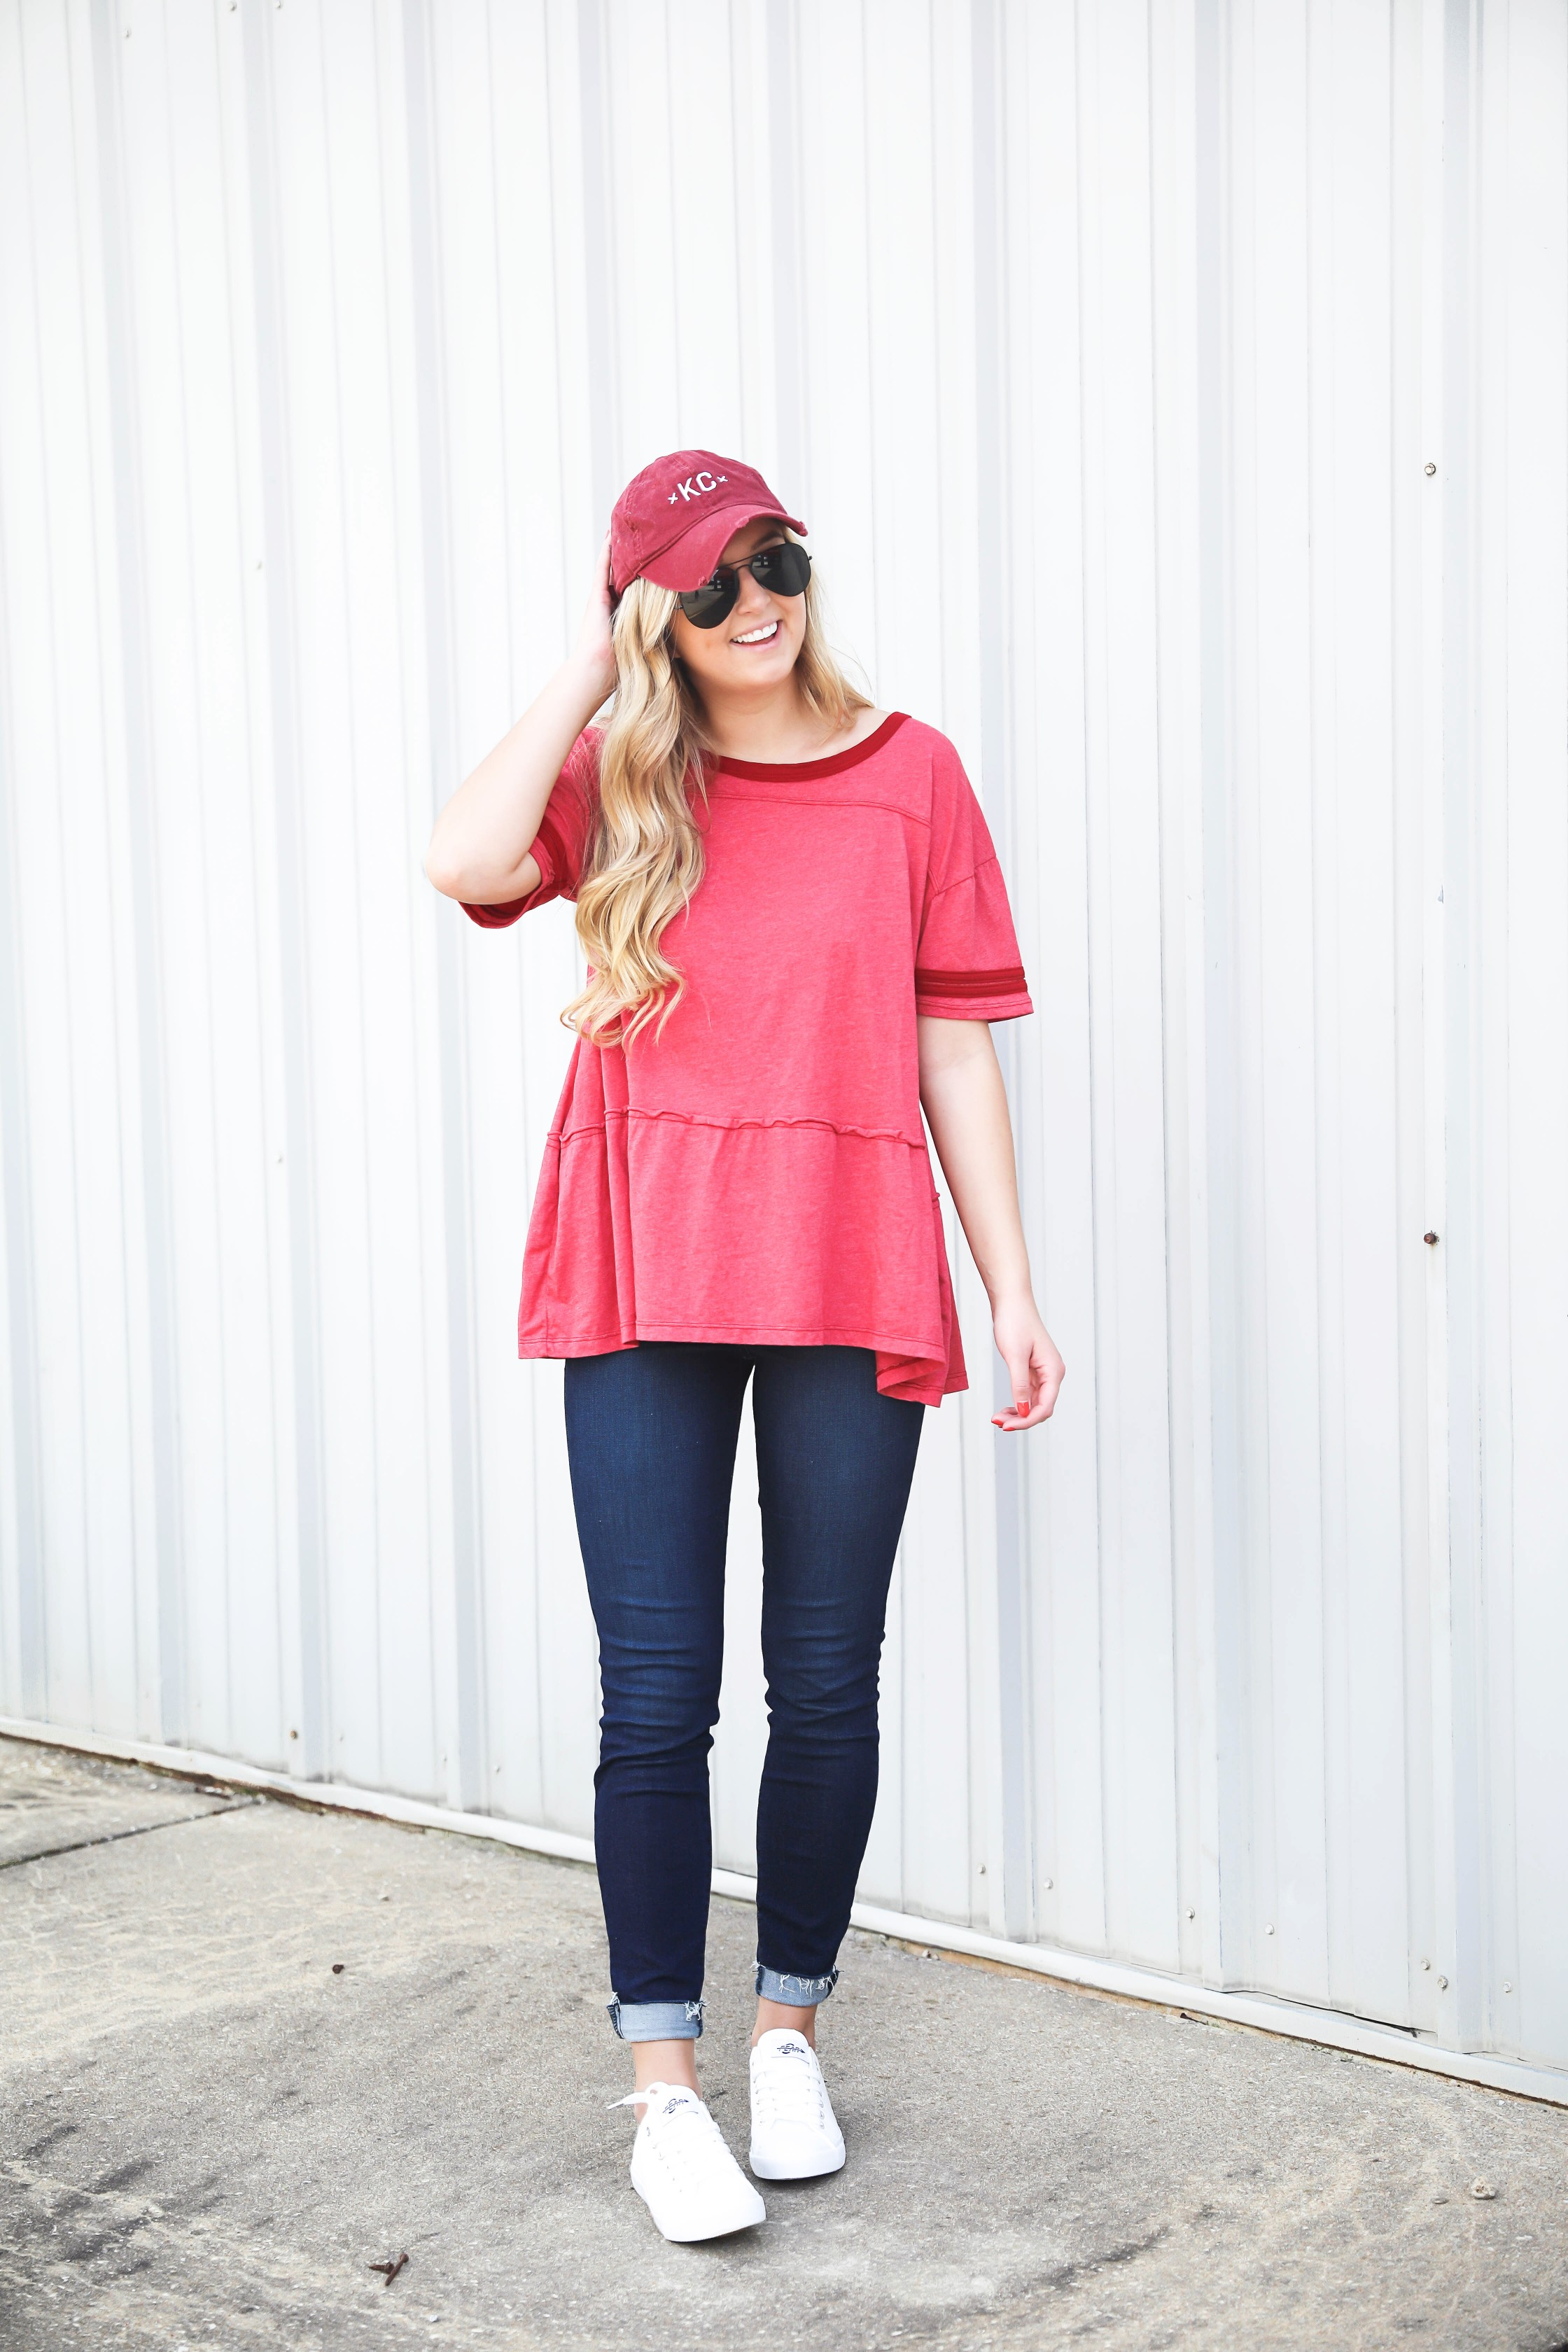 Kansas City outfit ideas! Cute KC top, this casual red top is perfect for chiefs games this fall! I am also sharing this cute outfit for Royals Games! This sequin KC royals shirt is so cute! Details on fashion blog daily dose of charm by lauren lindmark